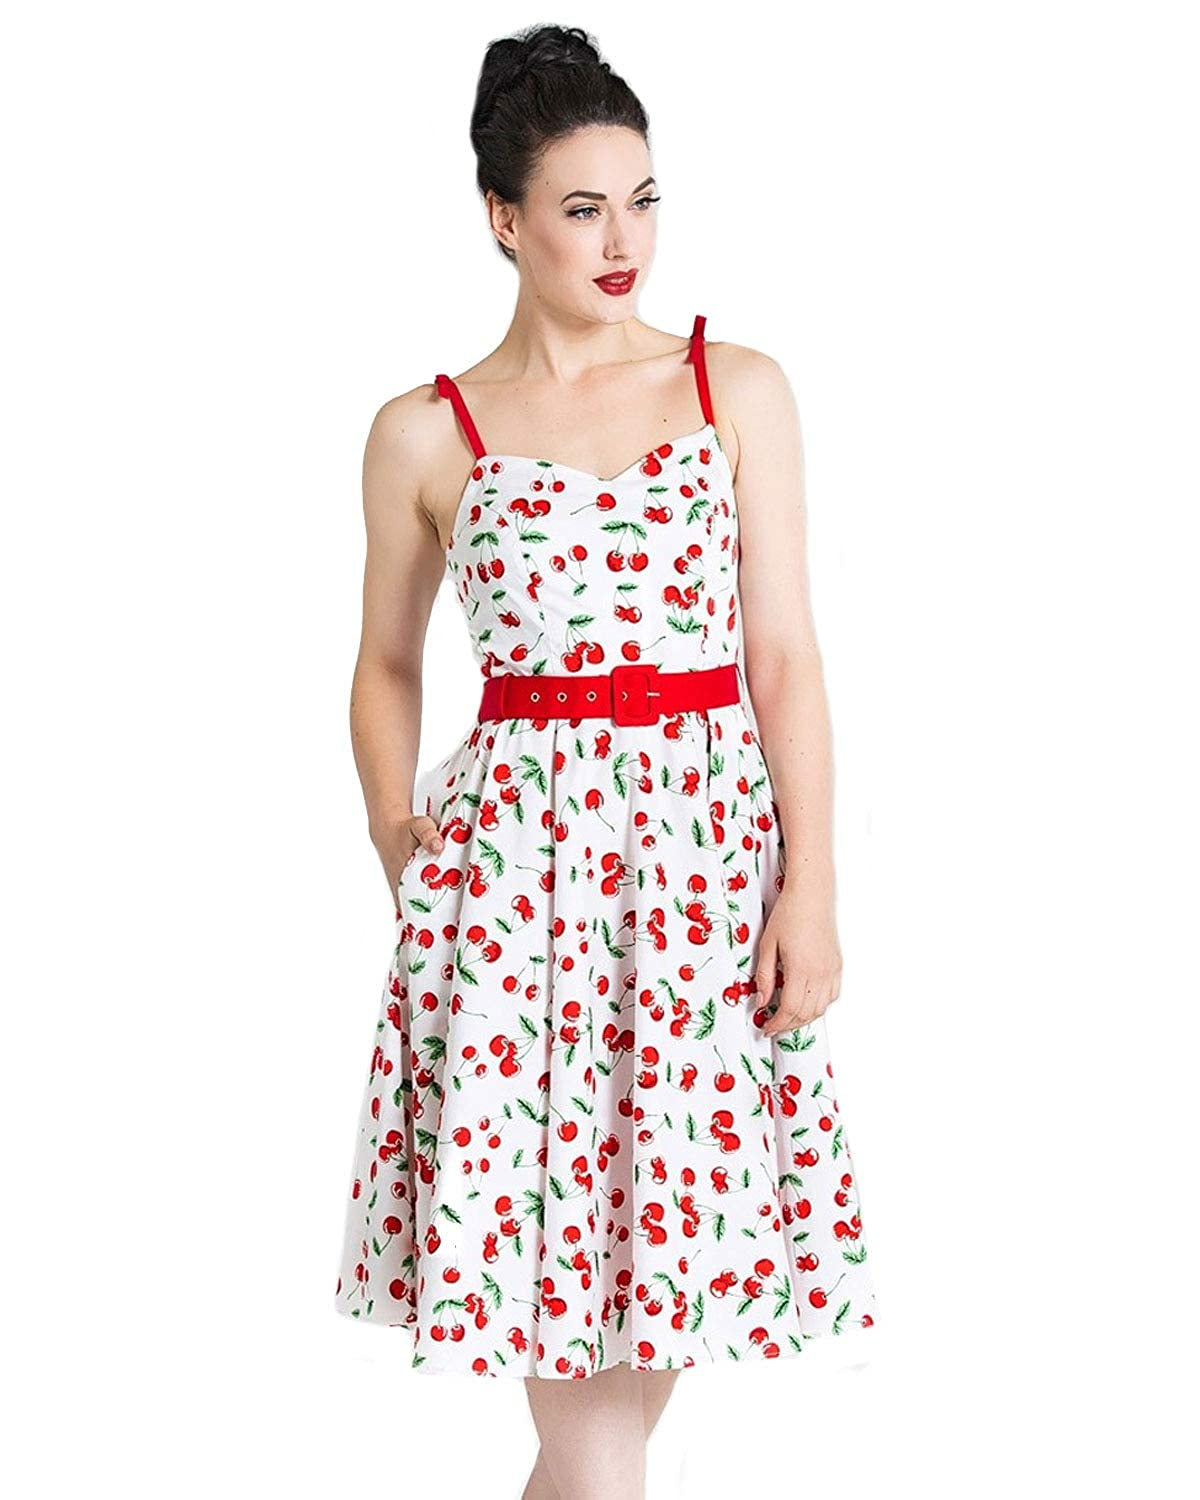 Pin Up Dresses | Pinup Clothing & Fashion Hell Bunny Womens Sweetie Cherry Print Pinup Style Sleeveless Belted A-Line Dress - Regular & Plus Size $68.33 AT vintagedancer.com